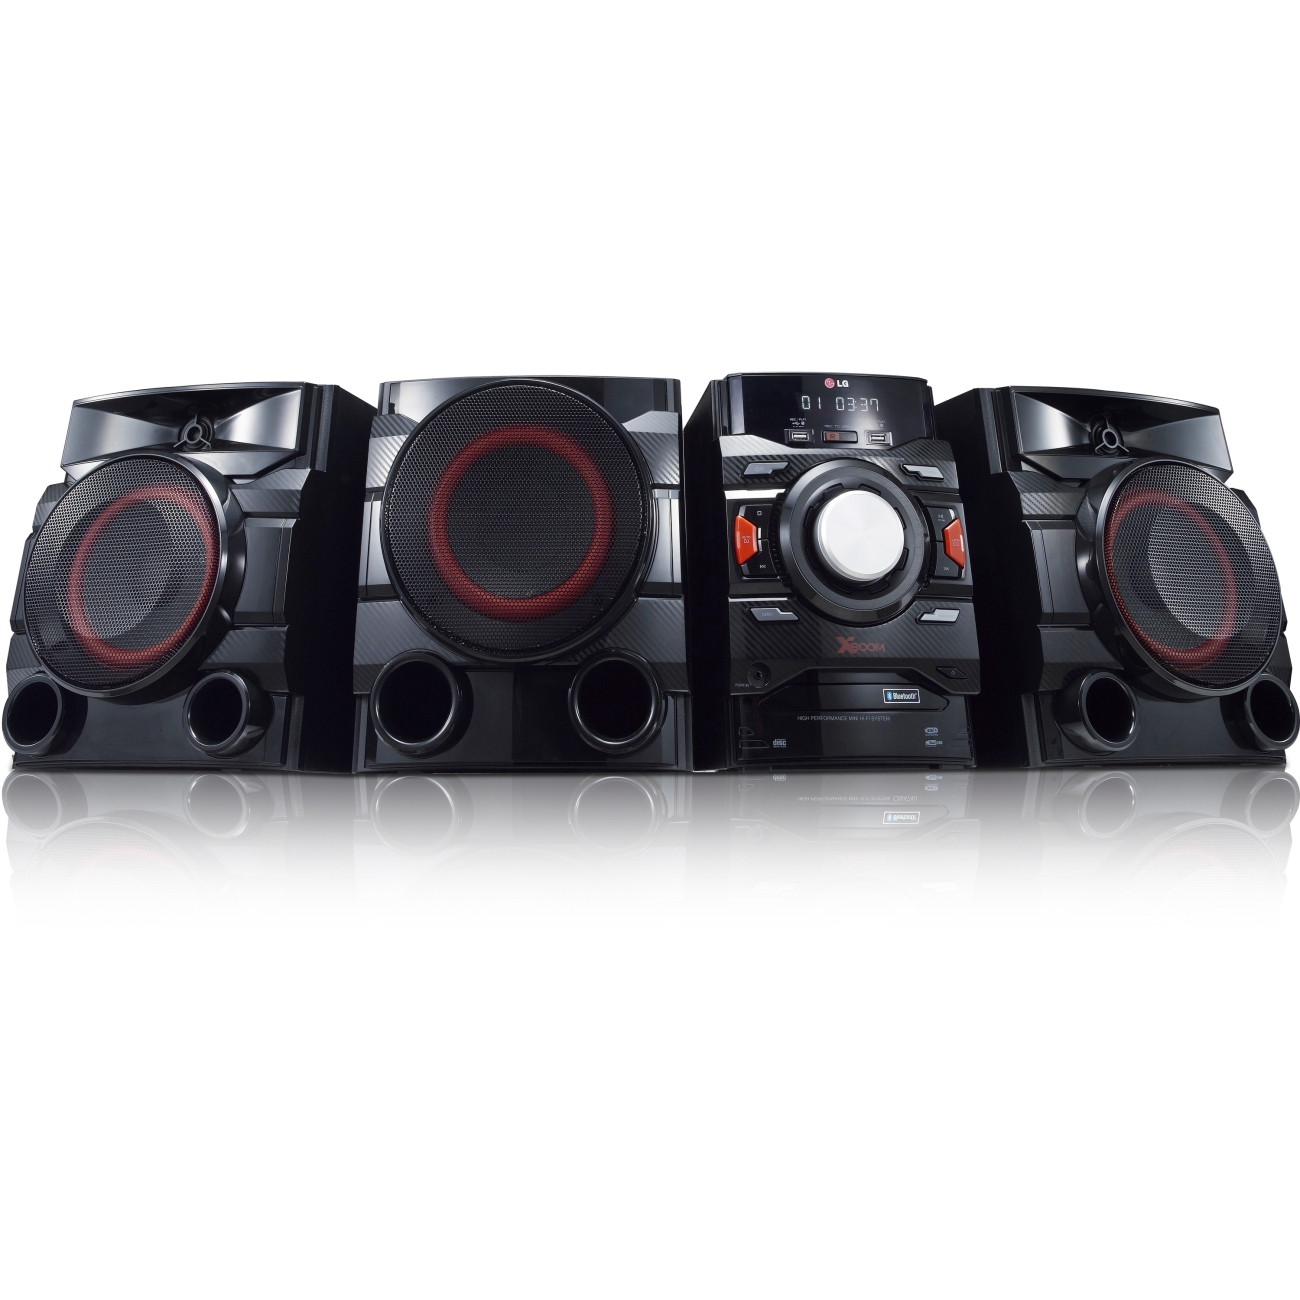 LG Electronics CM4550 700W 2.1 Channel Mini Shelf System with Built-in Subwoofer and Bluetooth